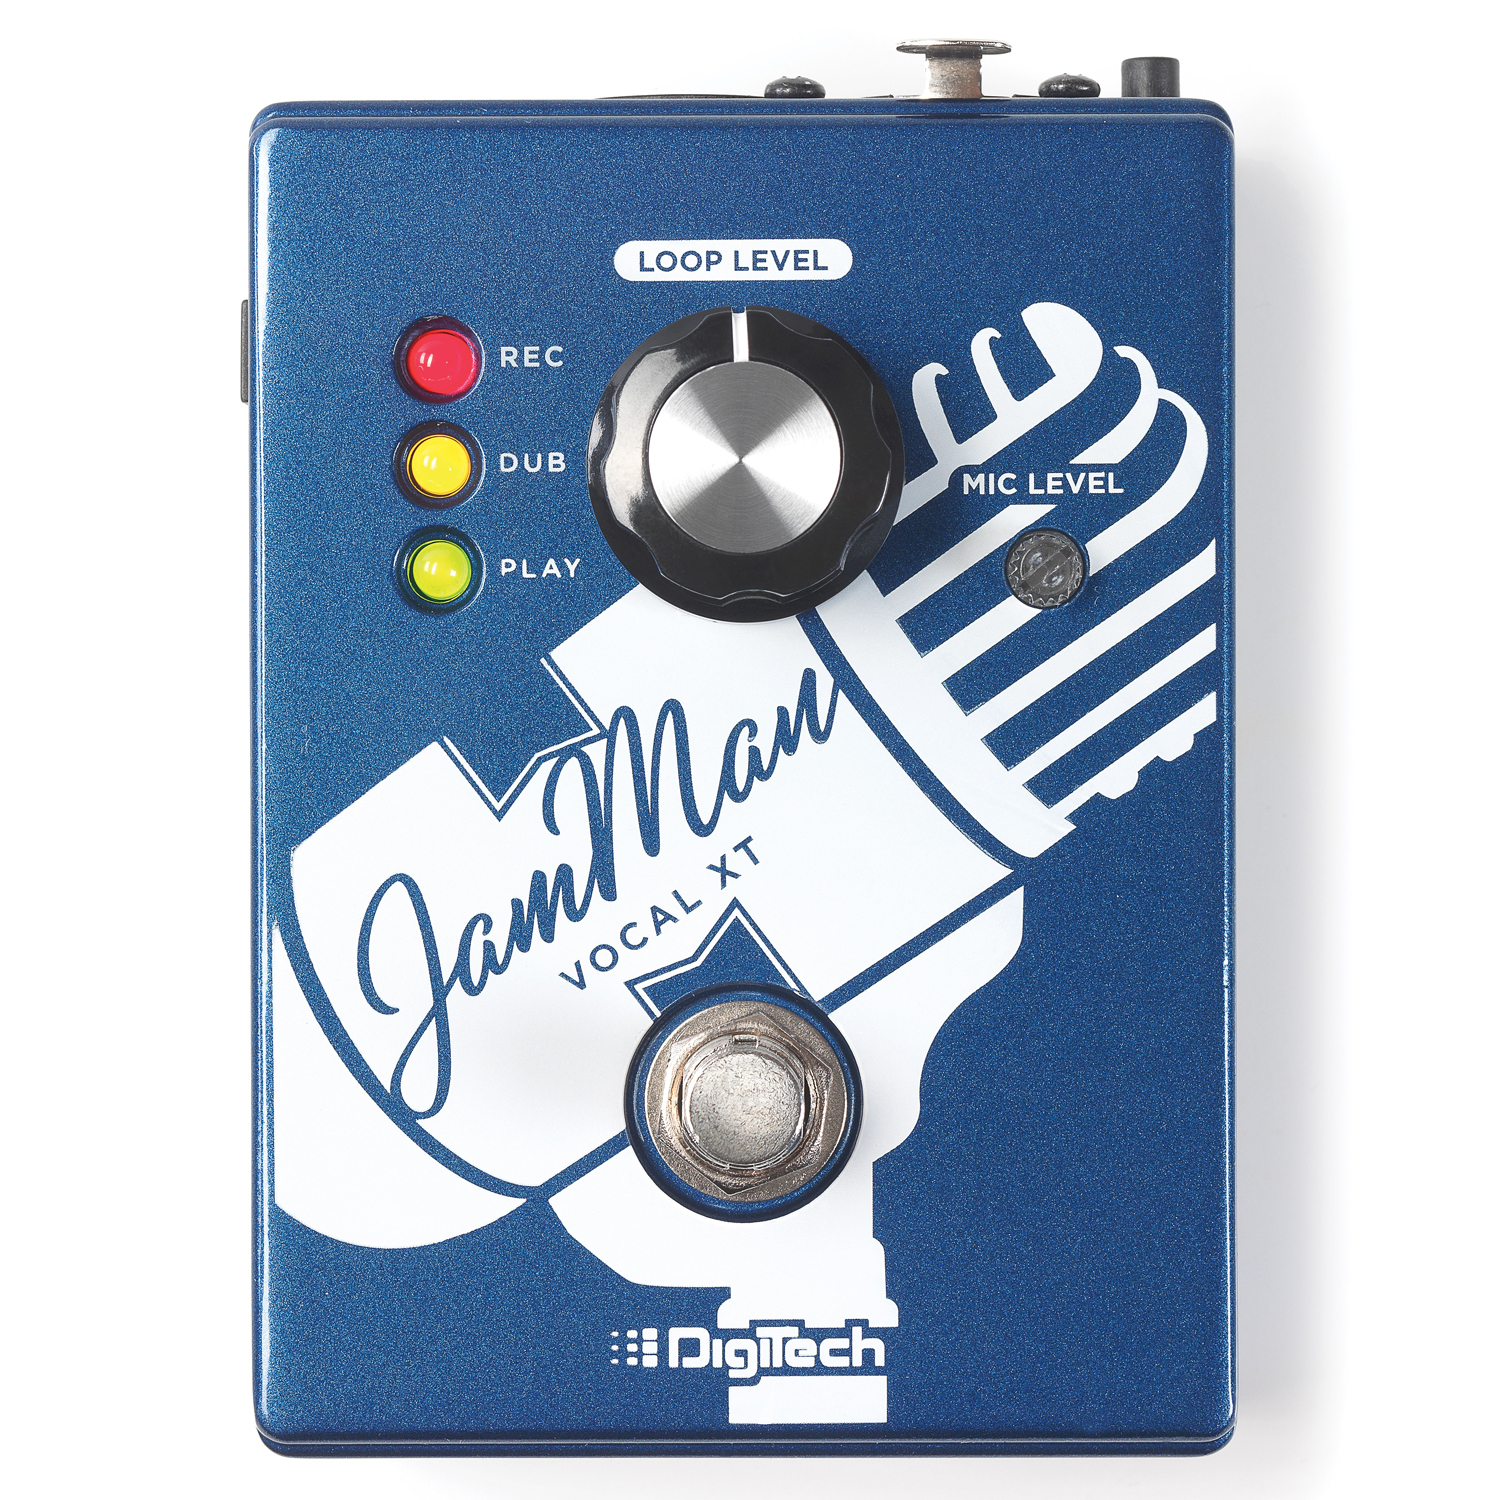 The First Dedicated Stompbox Looper for Vocalists